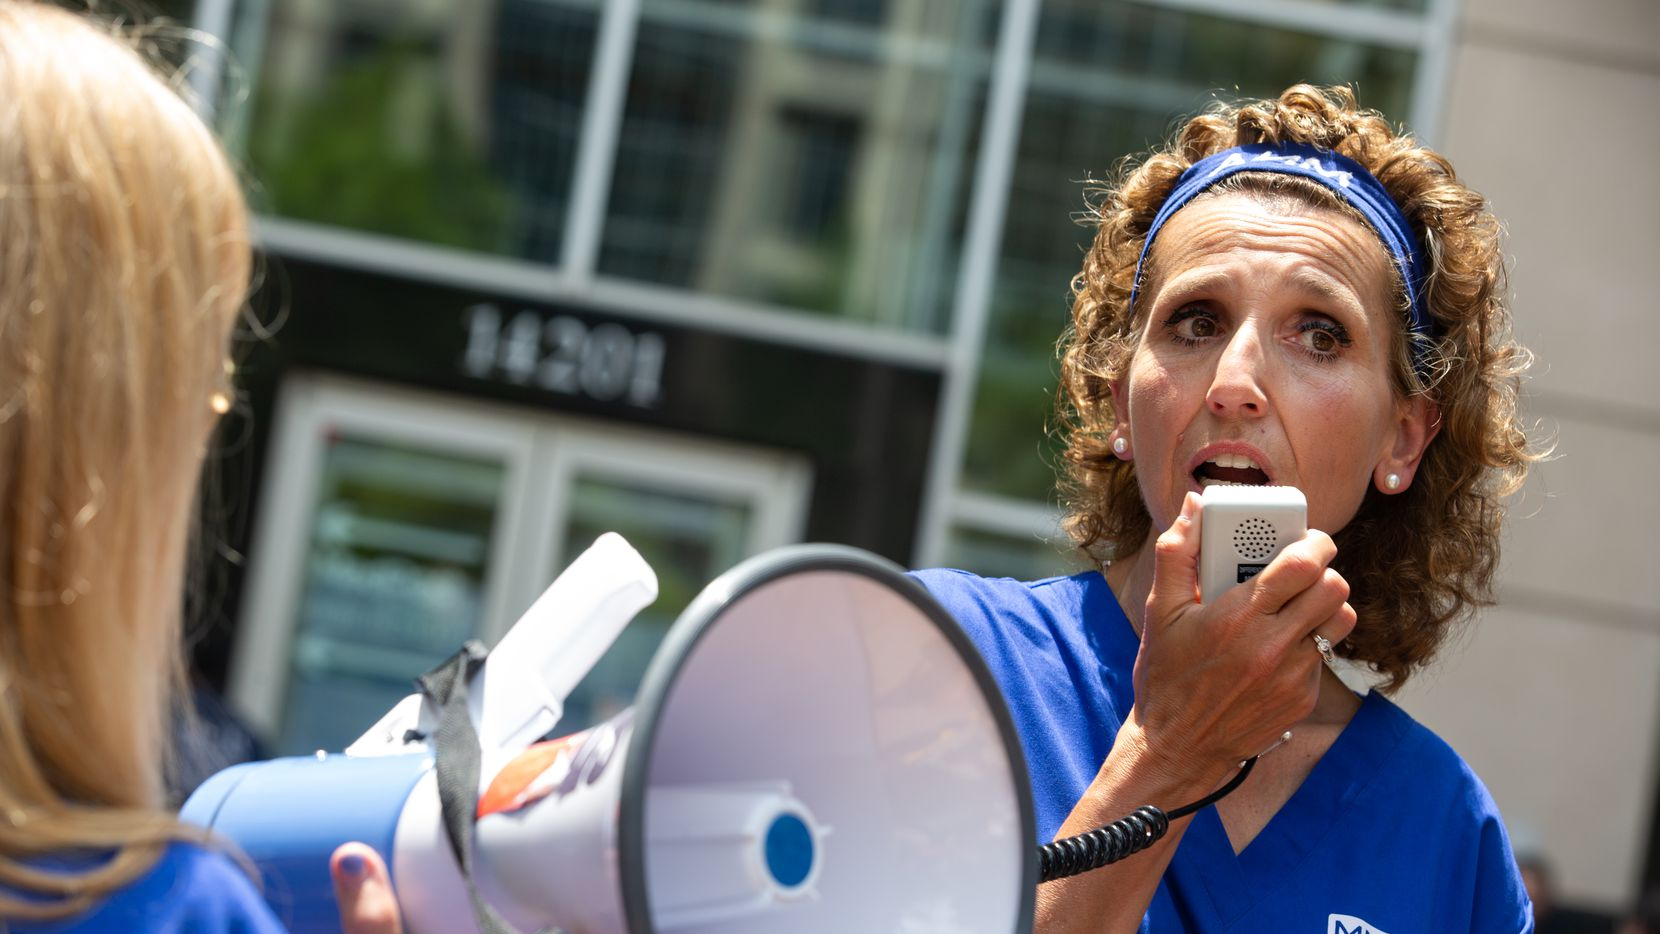 Marlena Pellegrino, a 44-year nurse at St. Vincent Hospital in Massachusetts, speaks to fellow protesters outside Tenet Healthcare's Farmers Branch headquarters after delivering a petition signed by 700 striking nurses on July 7, 2021.